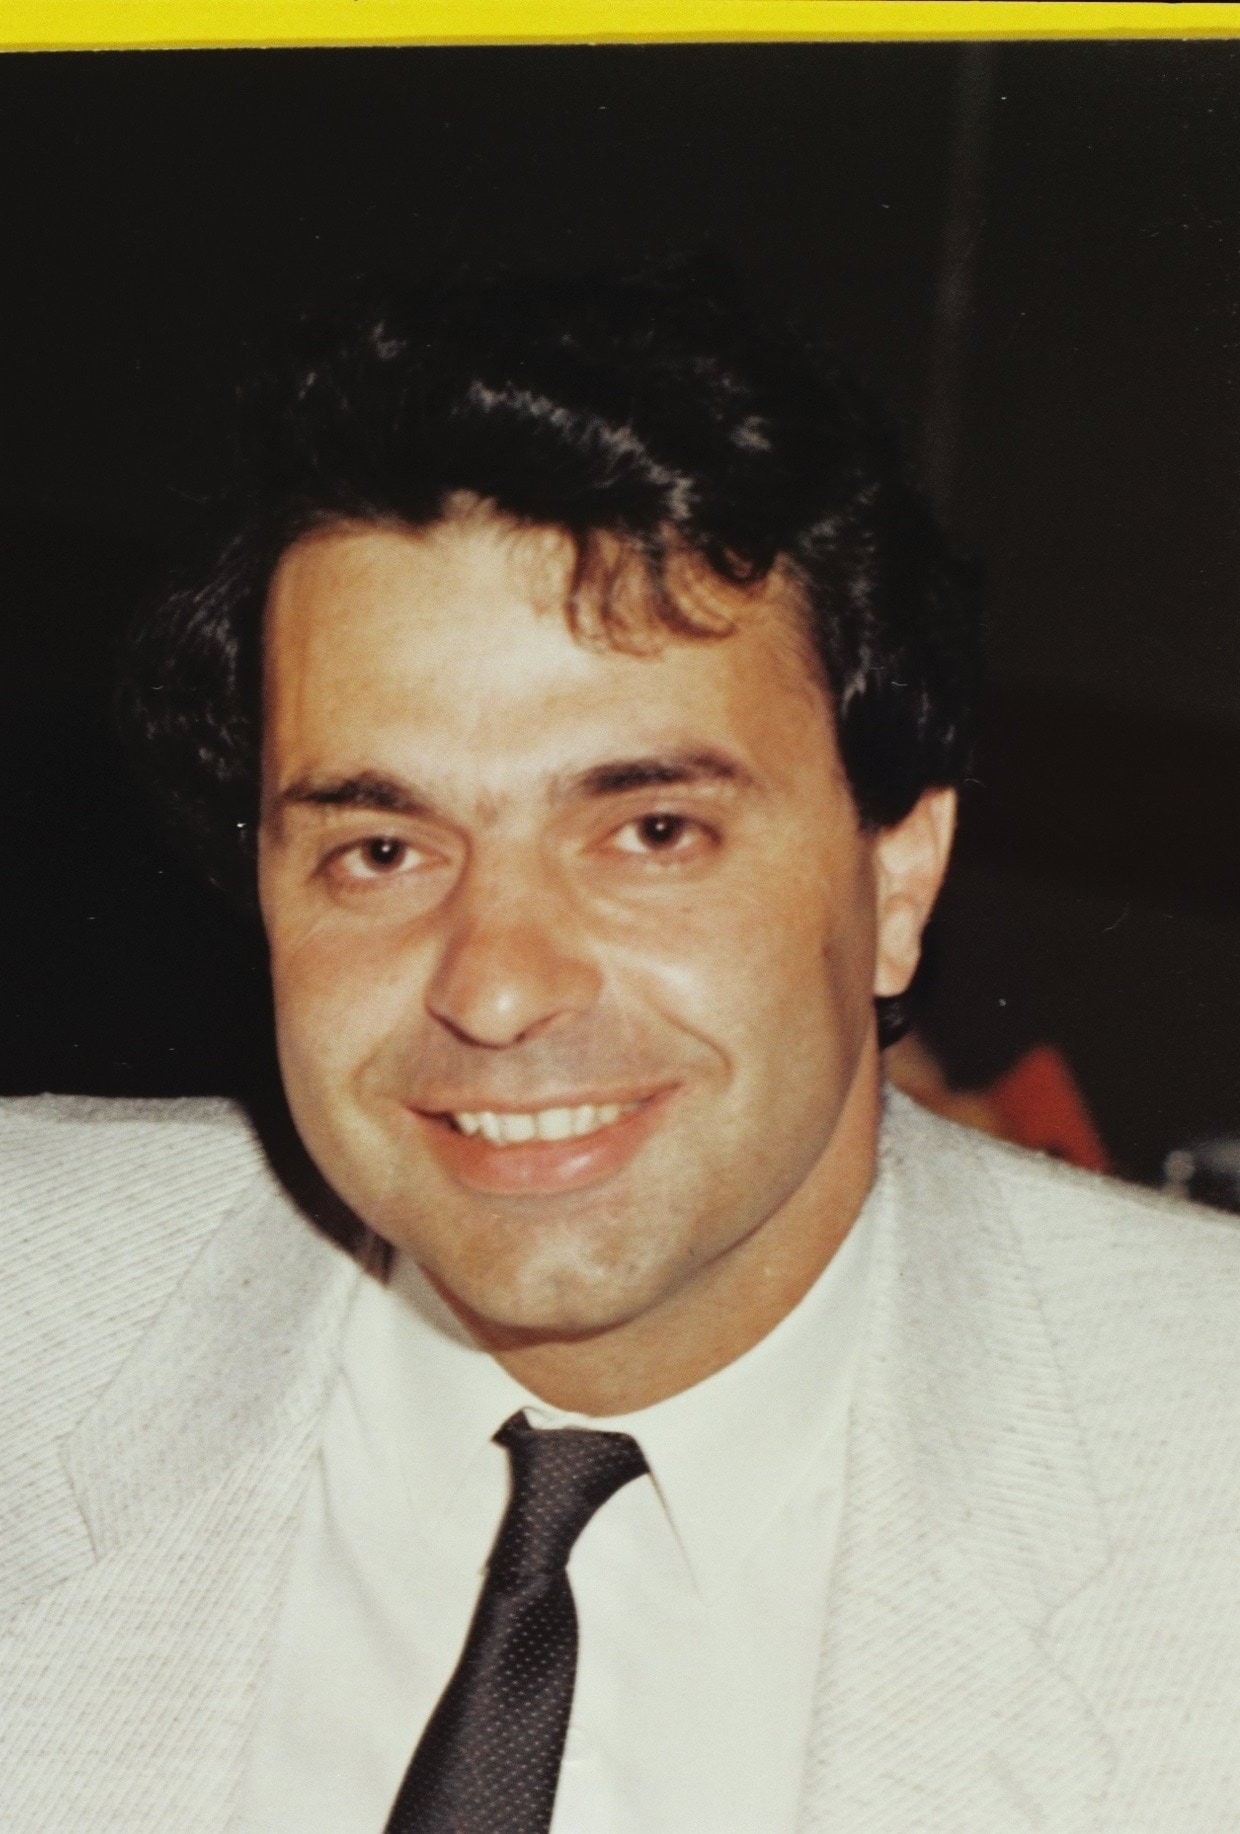 An archive image of Christopher Phillips